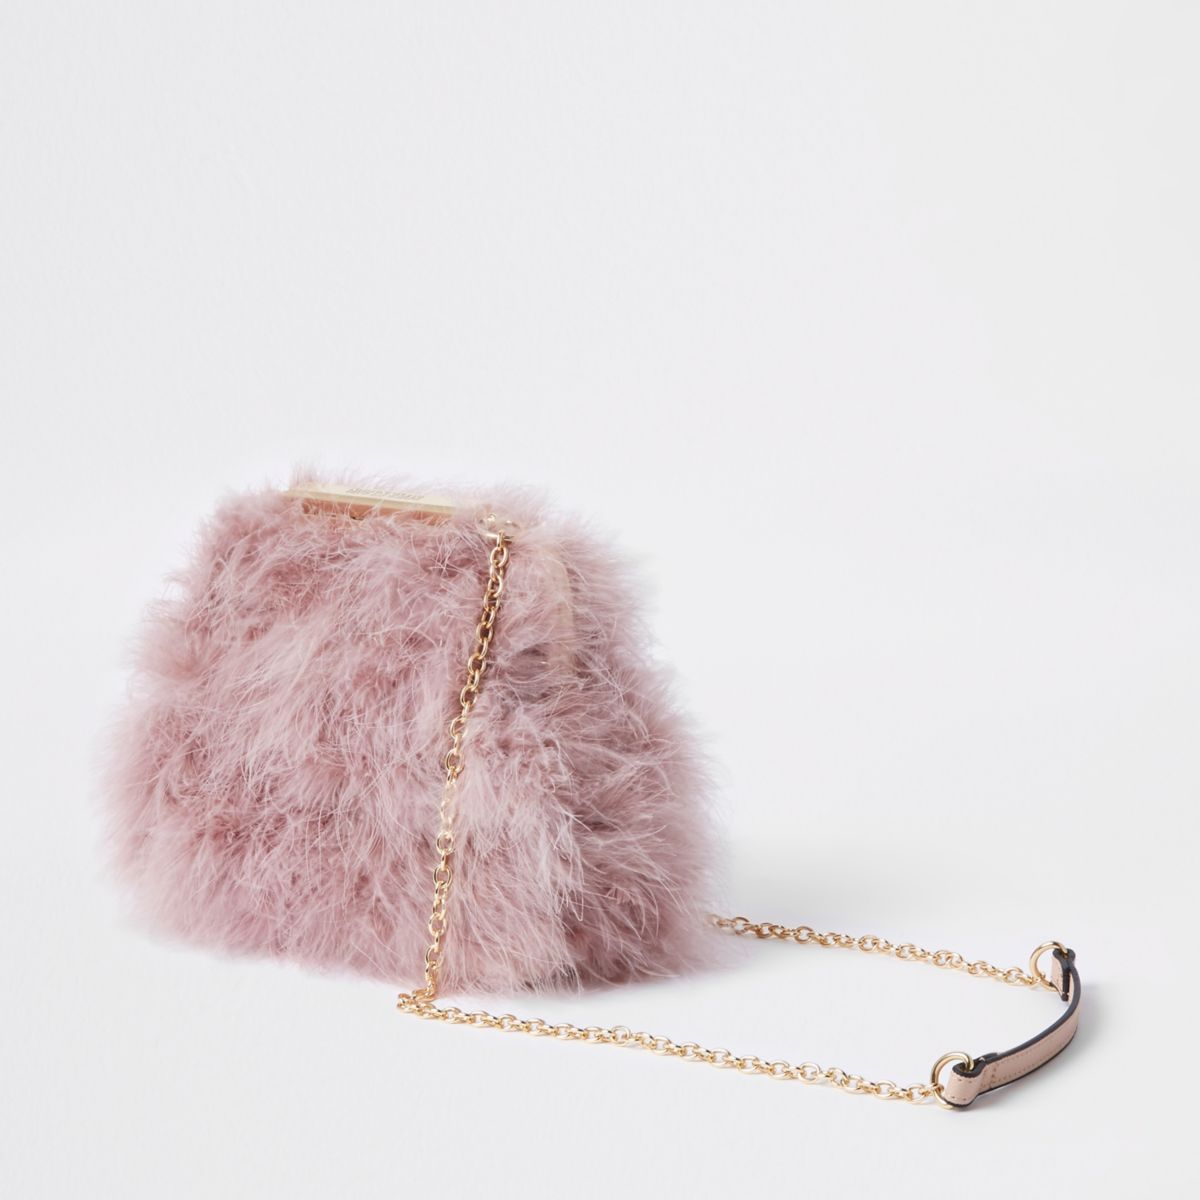 Pink Feather Clutch Chain Bag by River Island